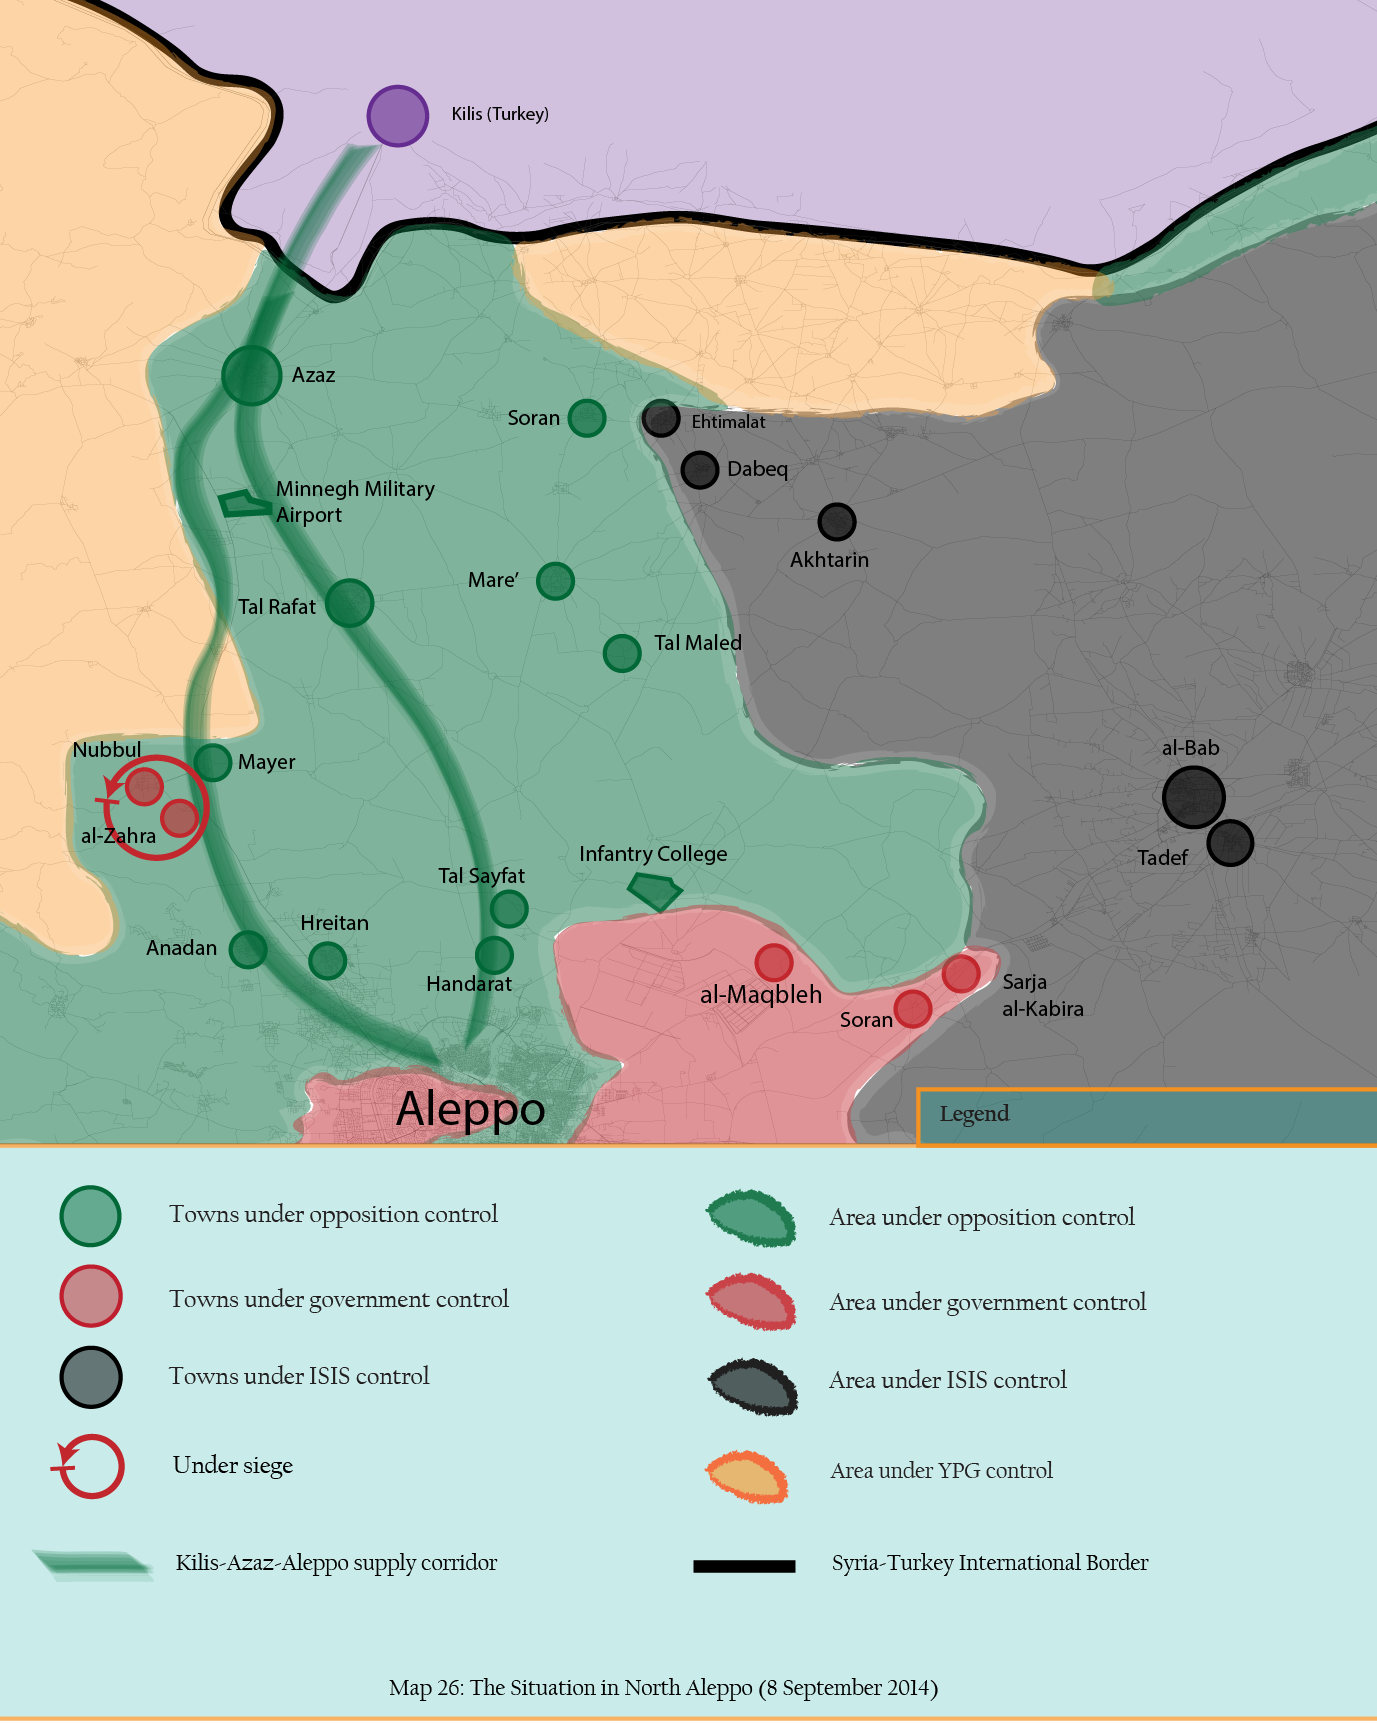 MAP 26 ISIS control north aleppo 8 Sept 2014